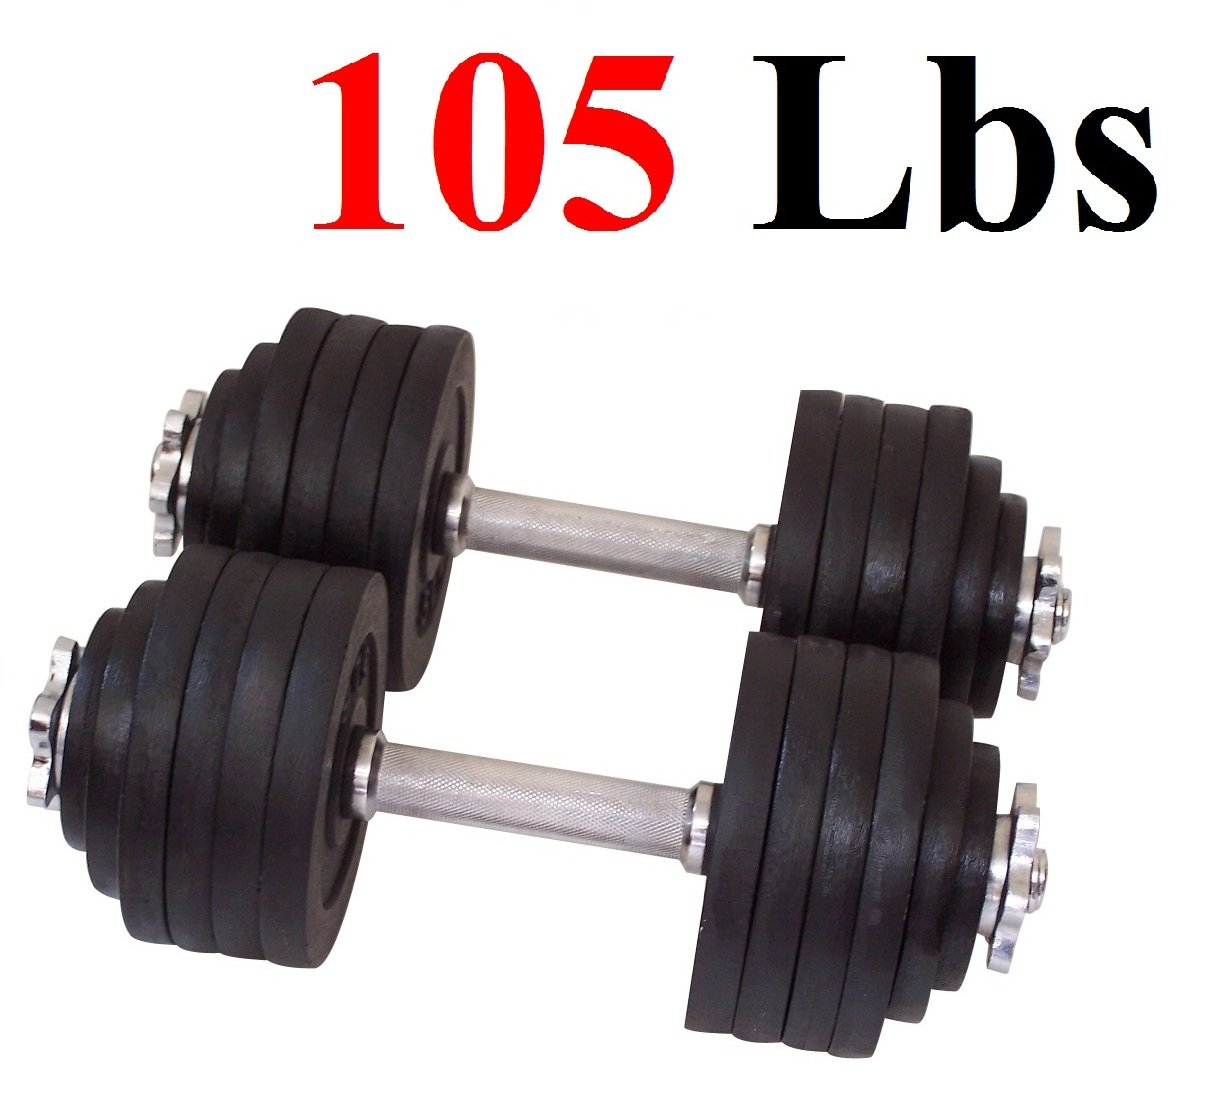 amazon com one pair of adjustable dumbbells cast iron total 105